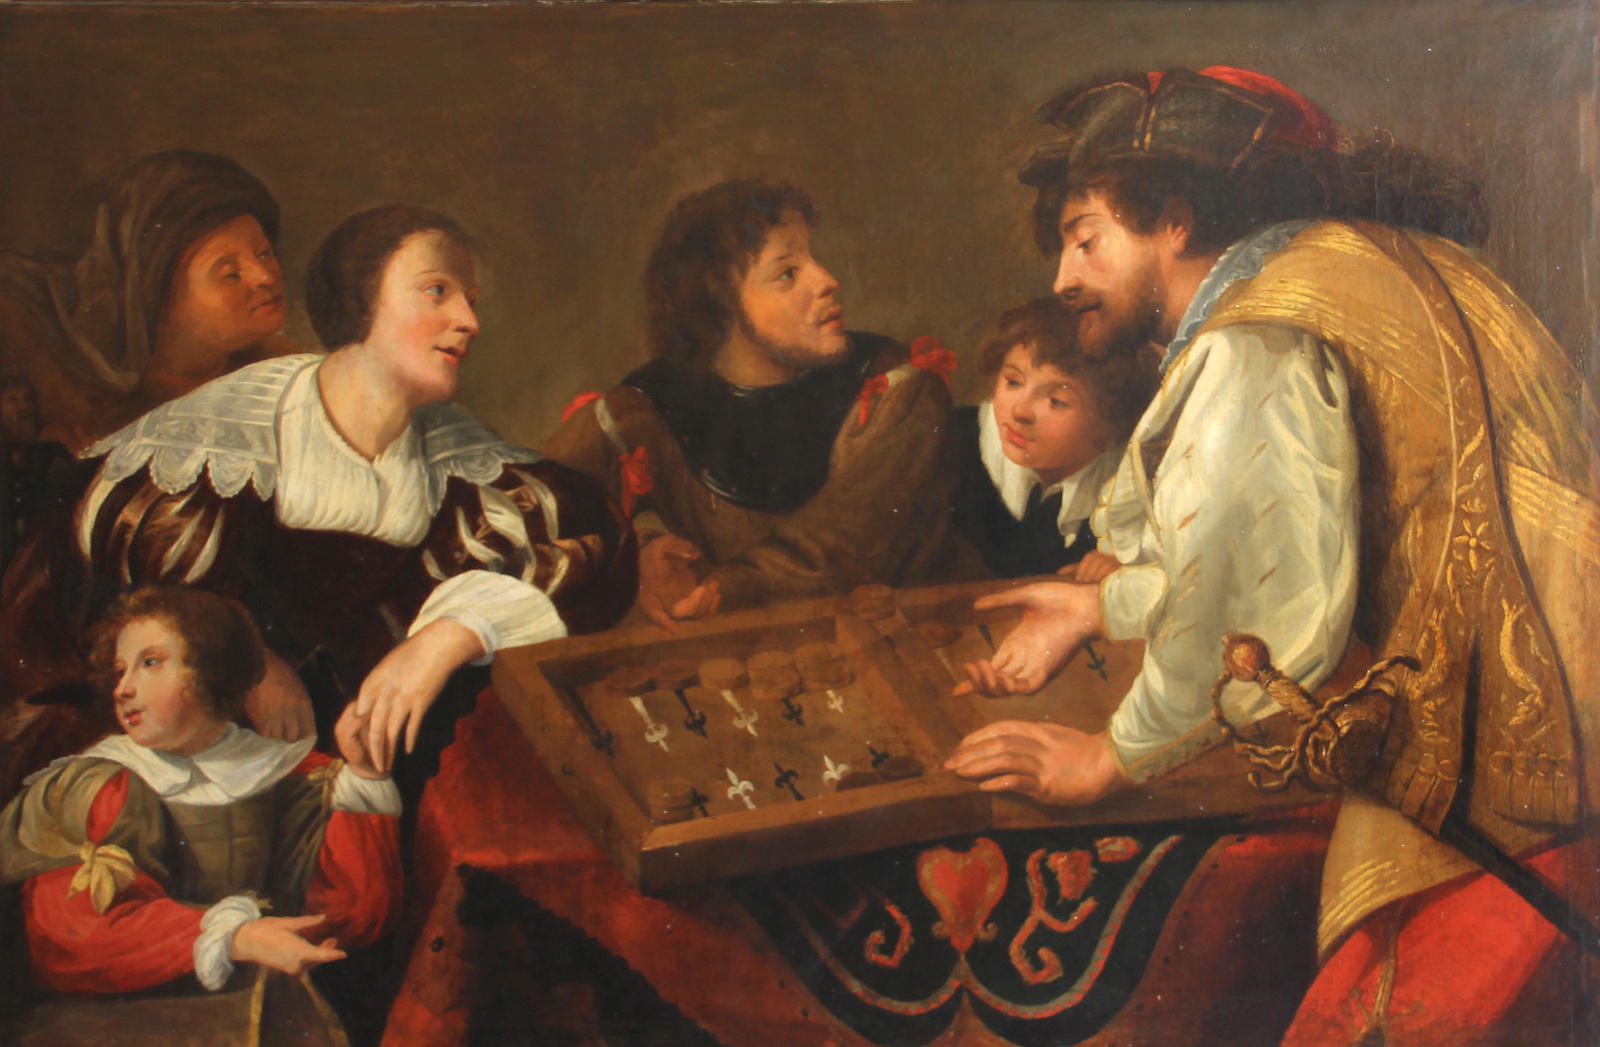 The Backgammon Players by Theodor Rombouts, Oil on Canvas, 1634